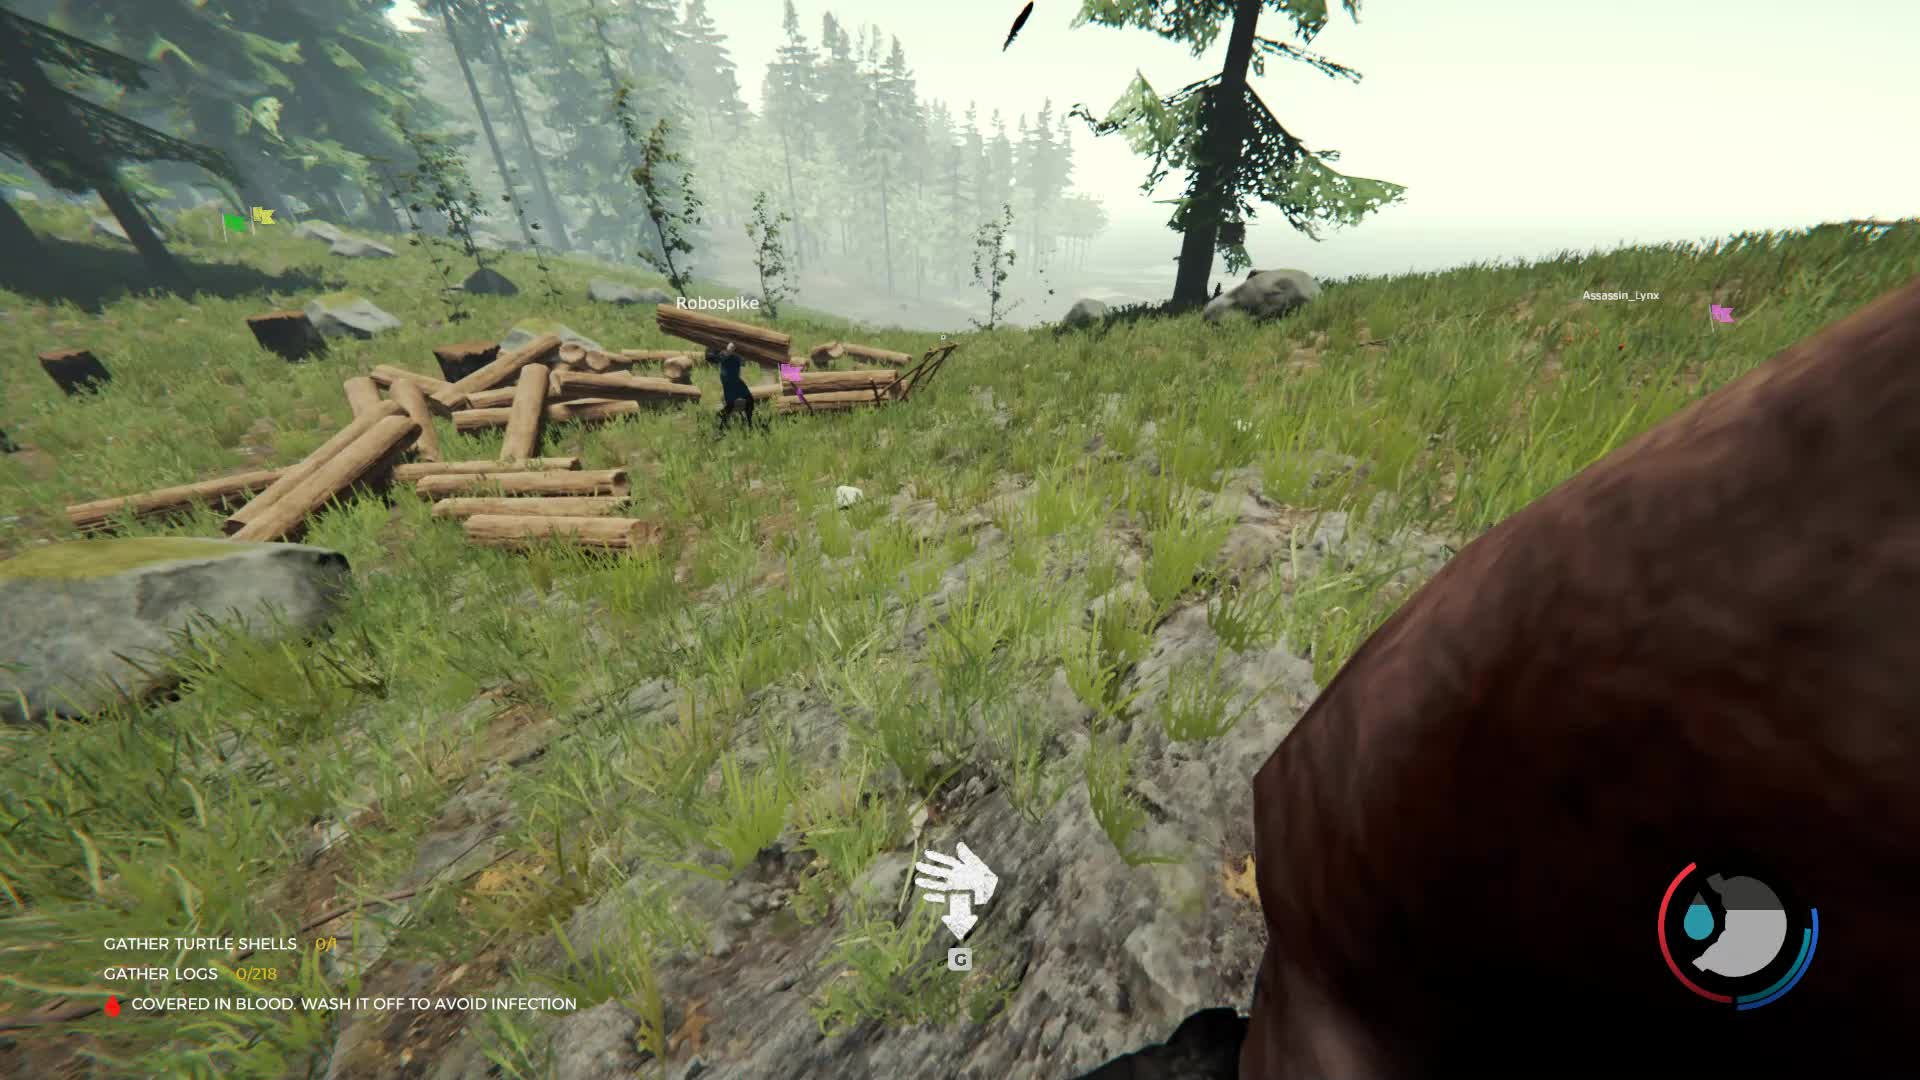 The Forest, Fuck outta here, log sled GIFs